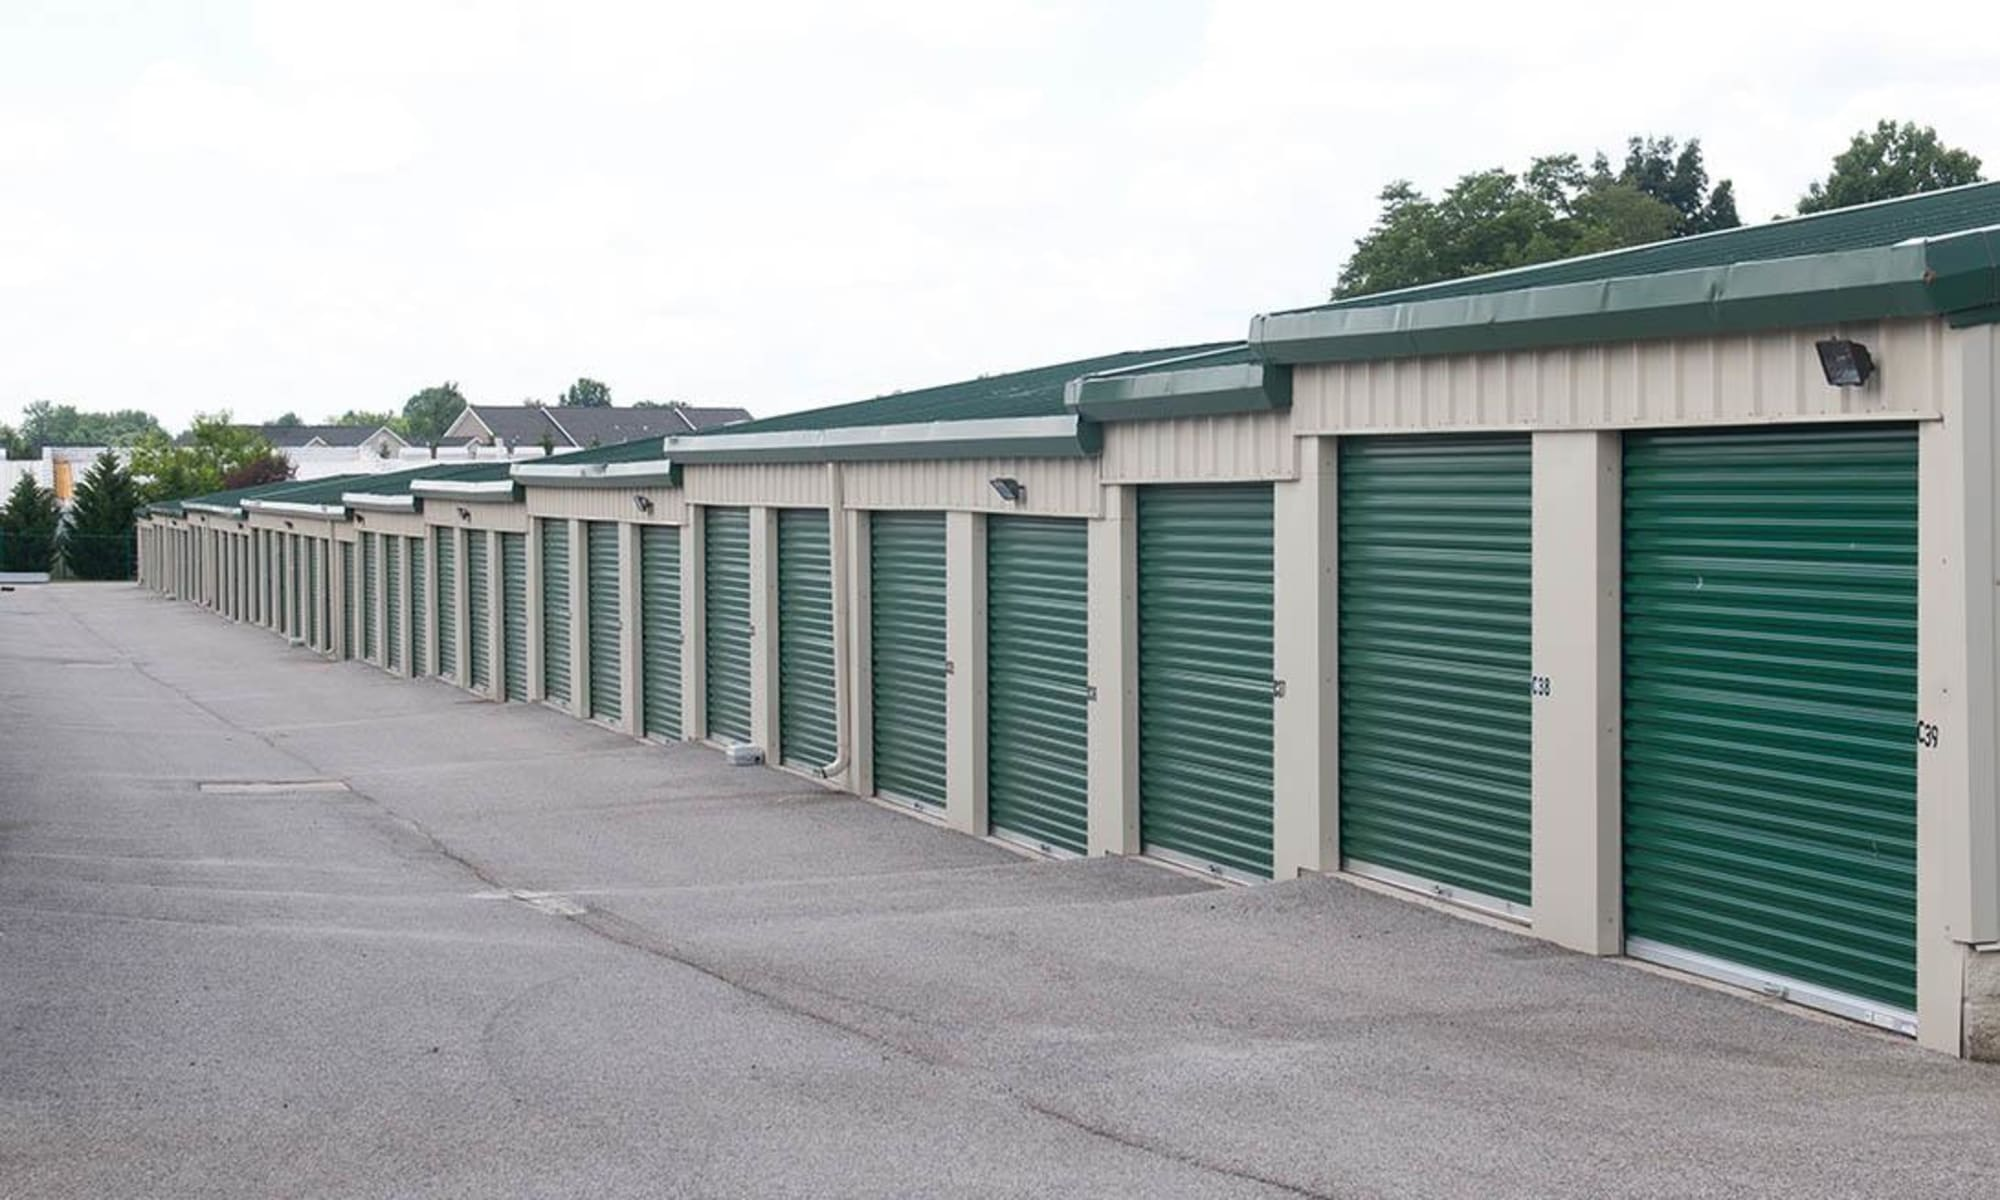 Outdoor units and a wide driveway at Virginia Varsity Storage in Christiansburg, Virginia